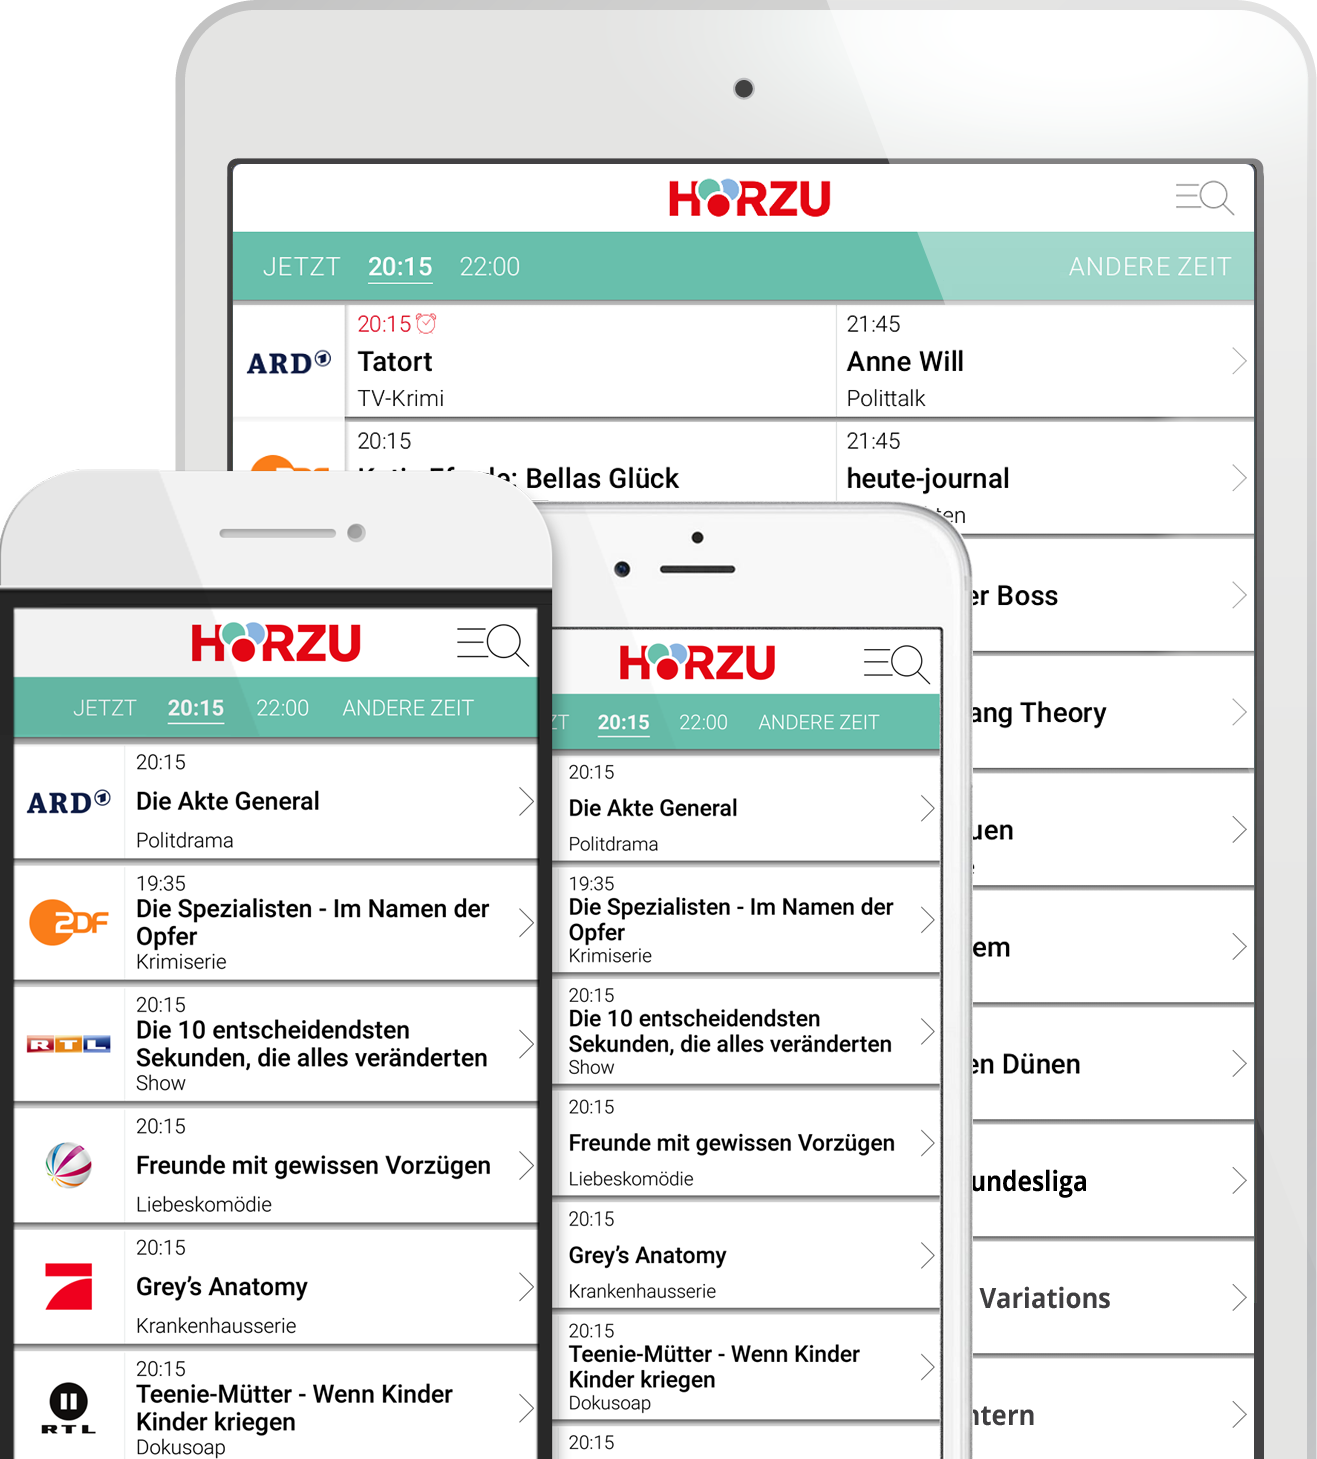 HÖRZU Android/iPhone Home